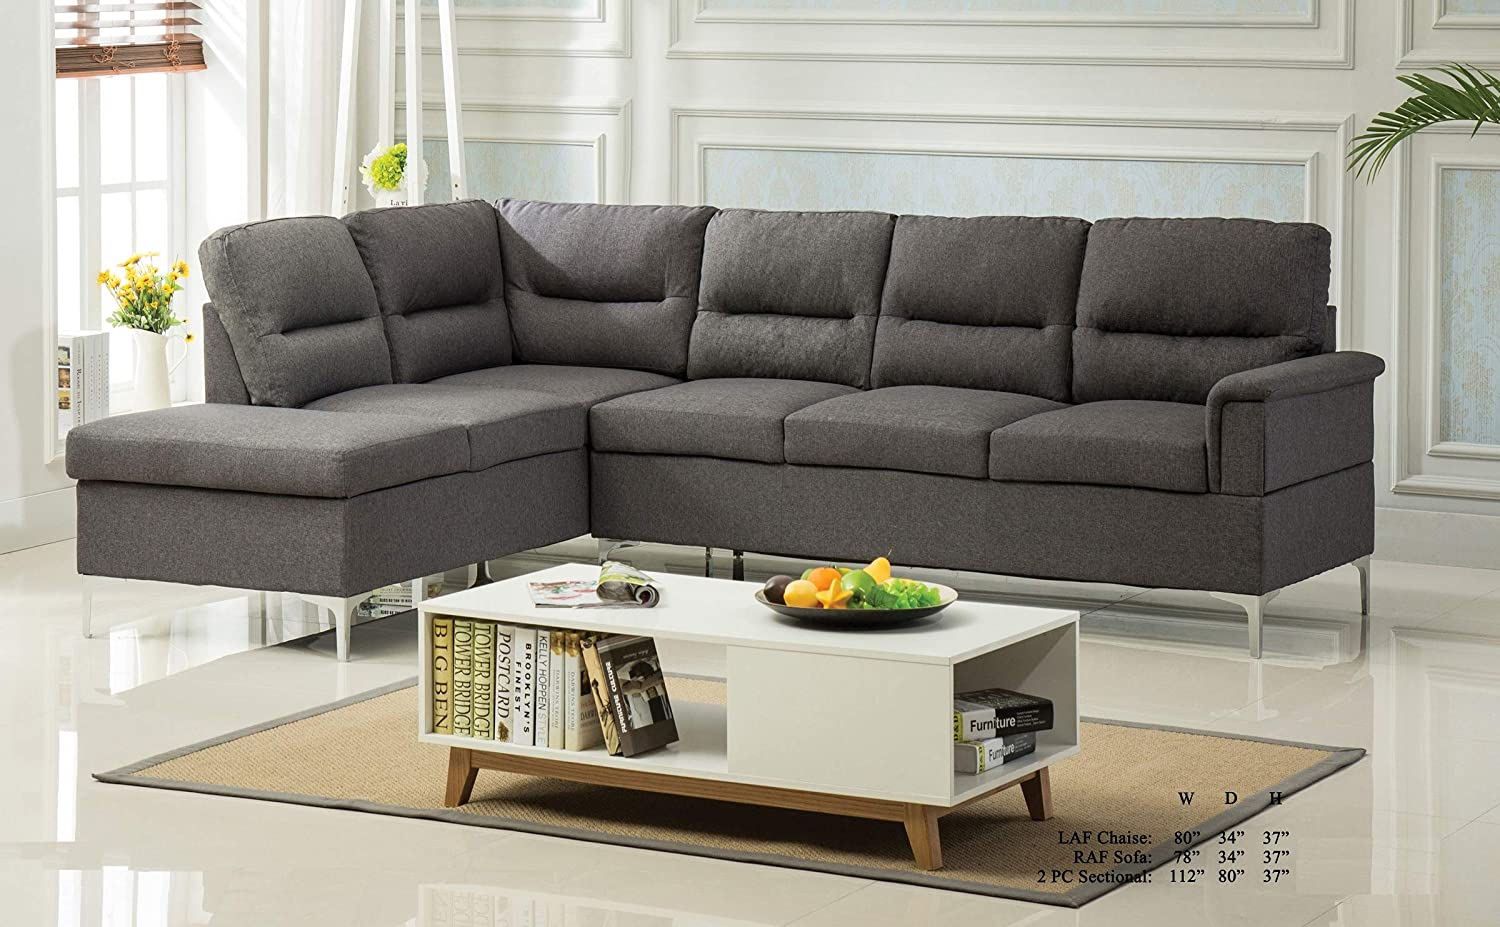 Amazon.com: Modern Classic Living Room Furniture 2pc Sectional Sofa ...